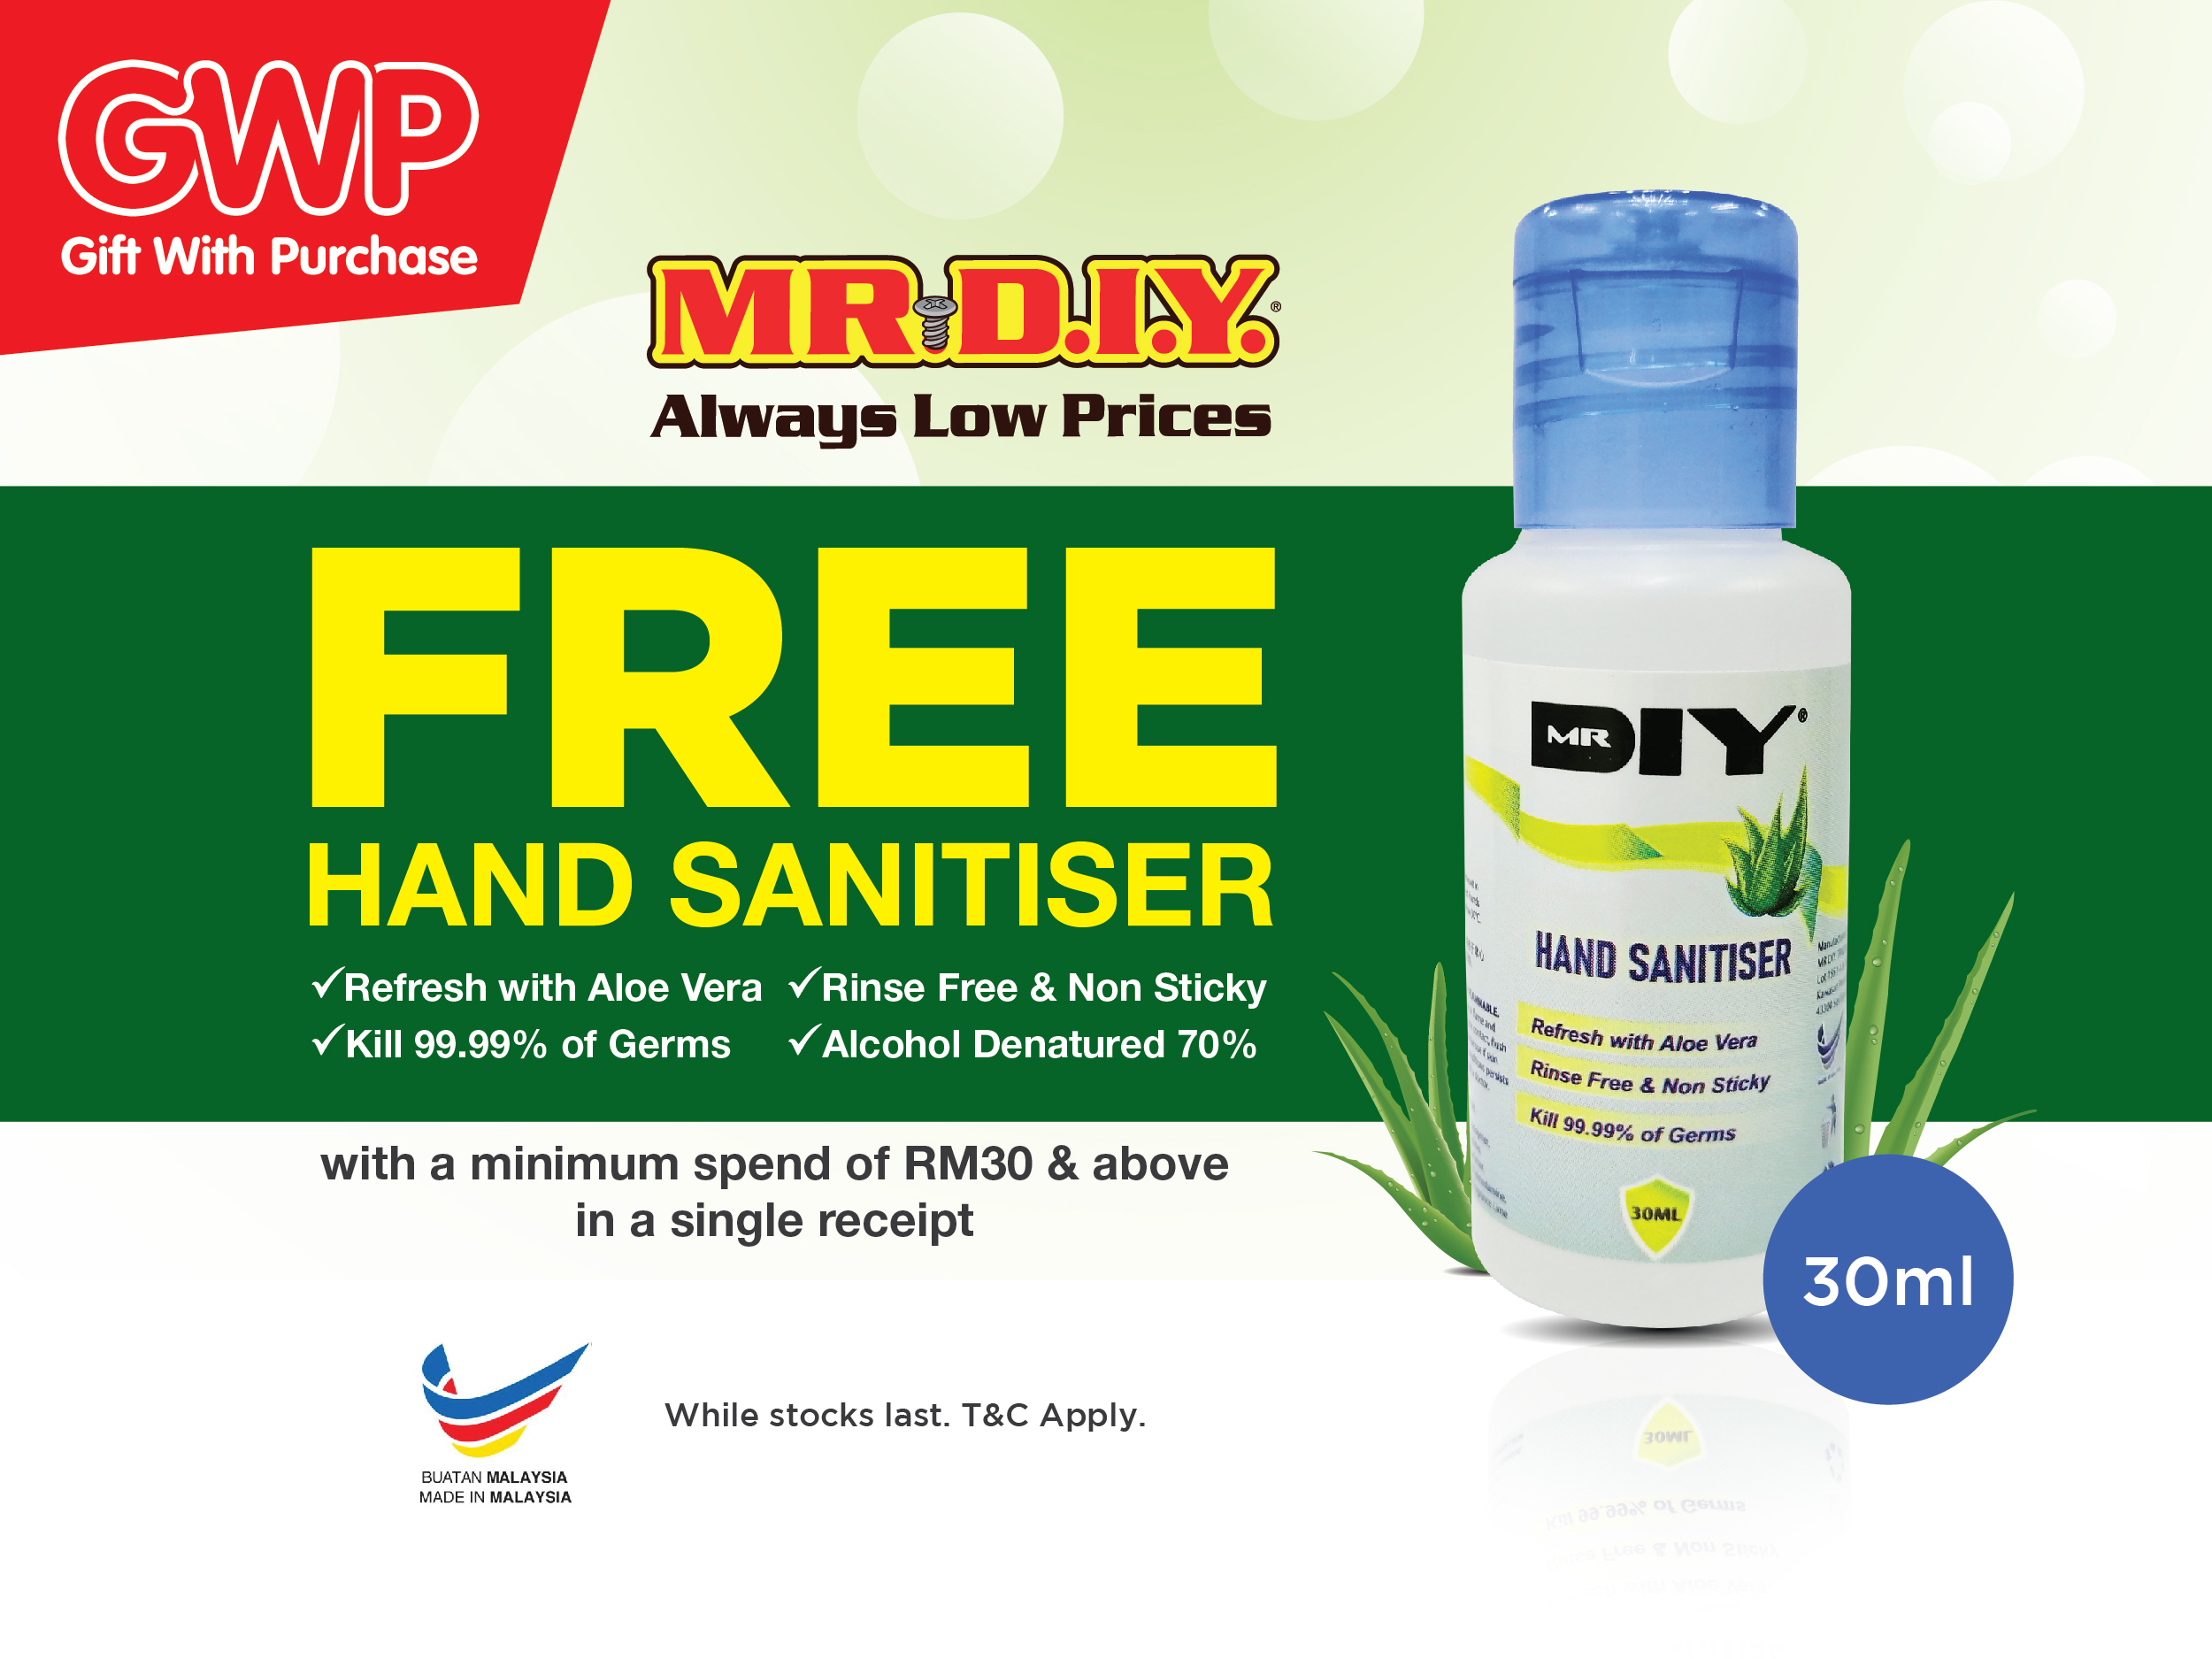 Gift With Purchase: Free Mr D.I.Y Hand Sanitiser